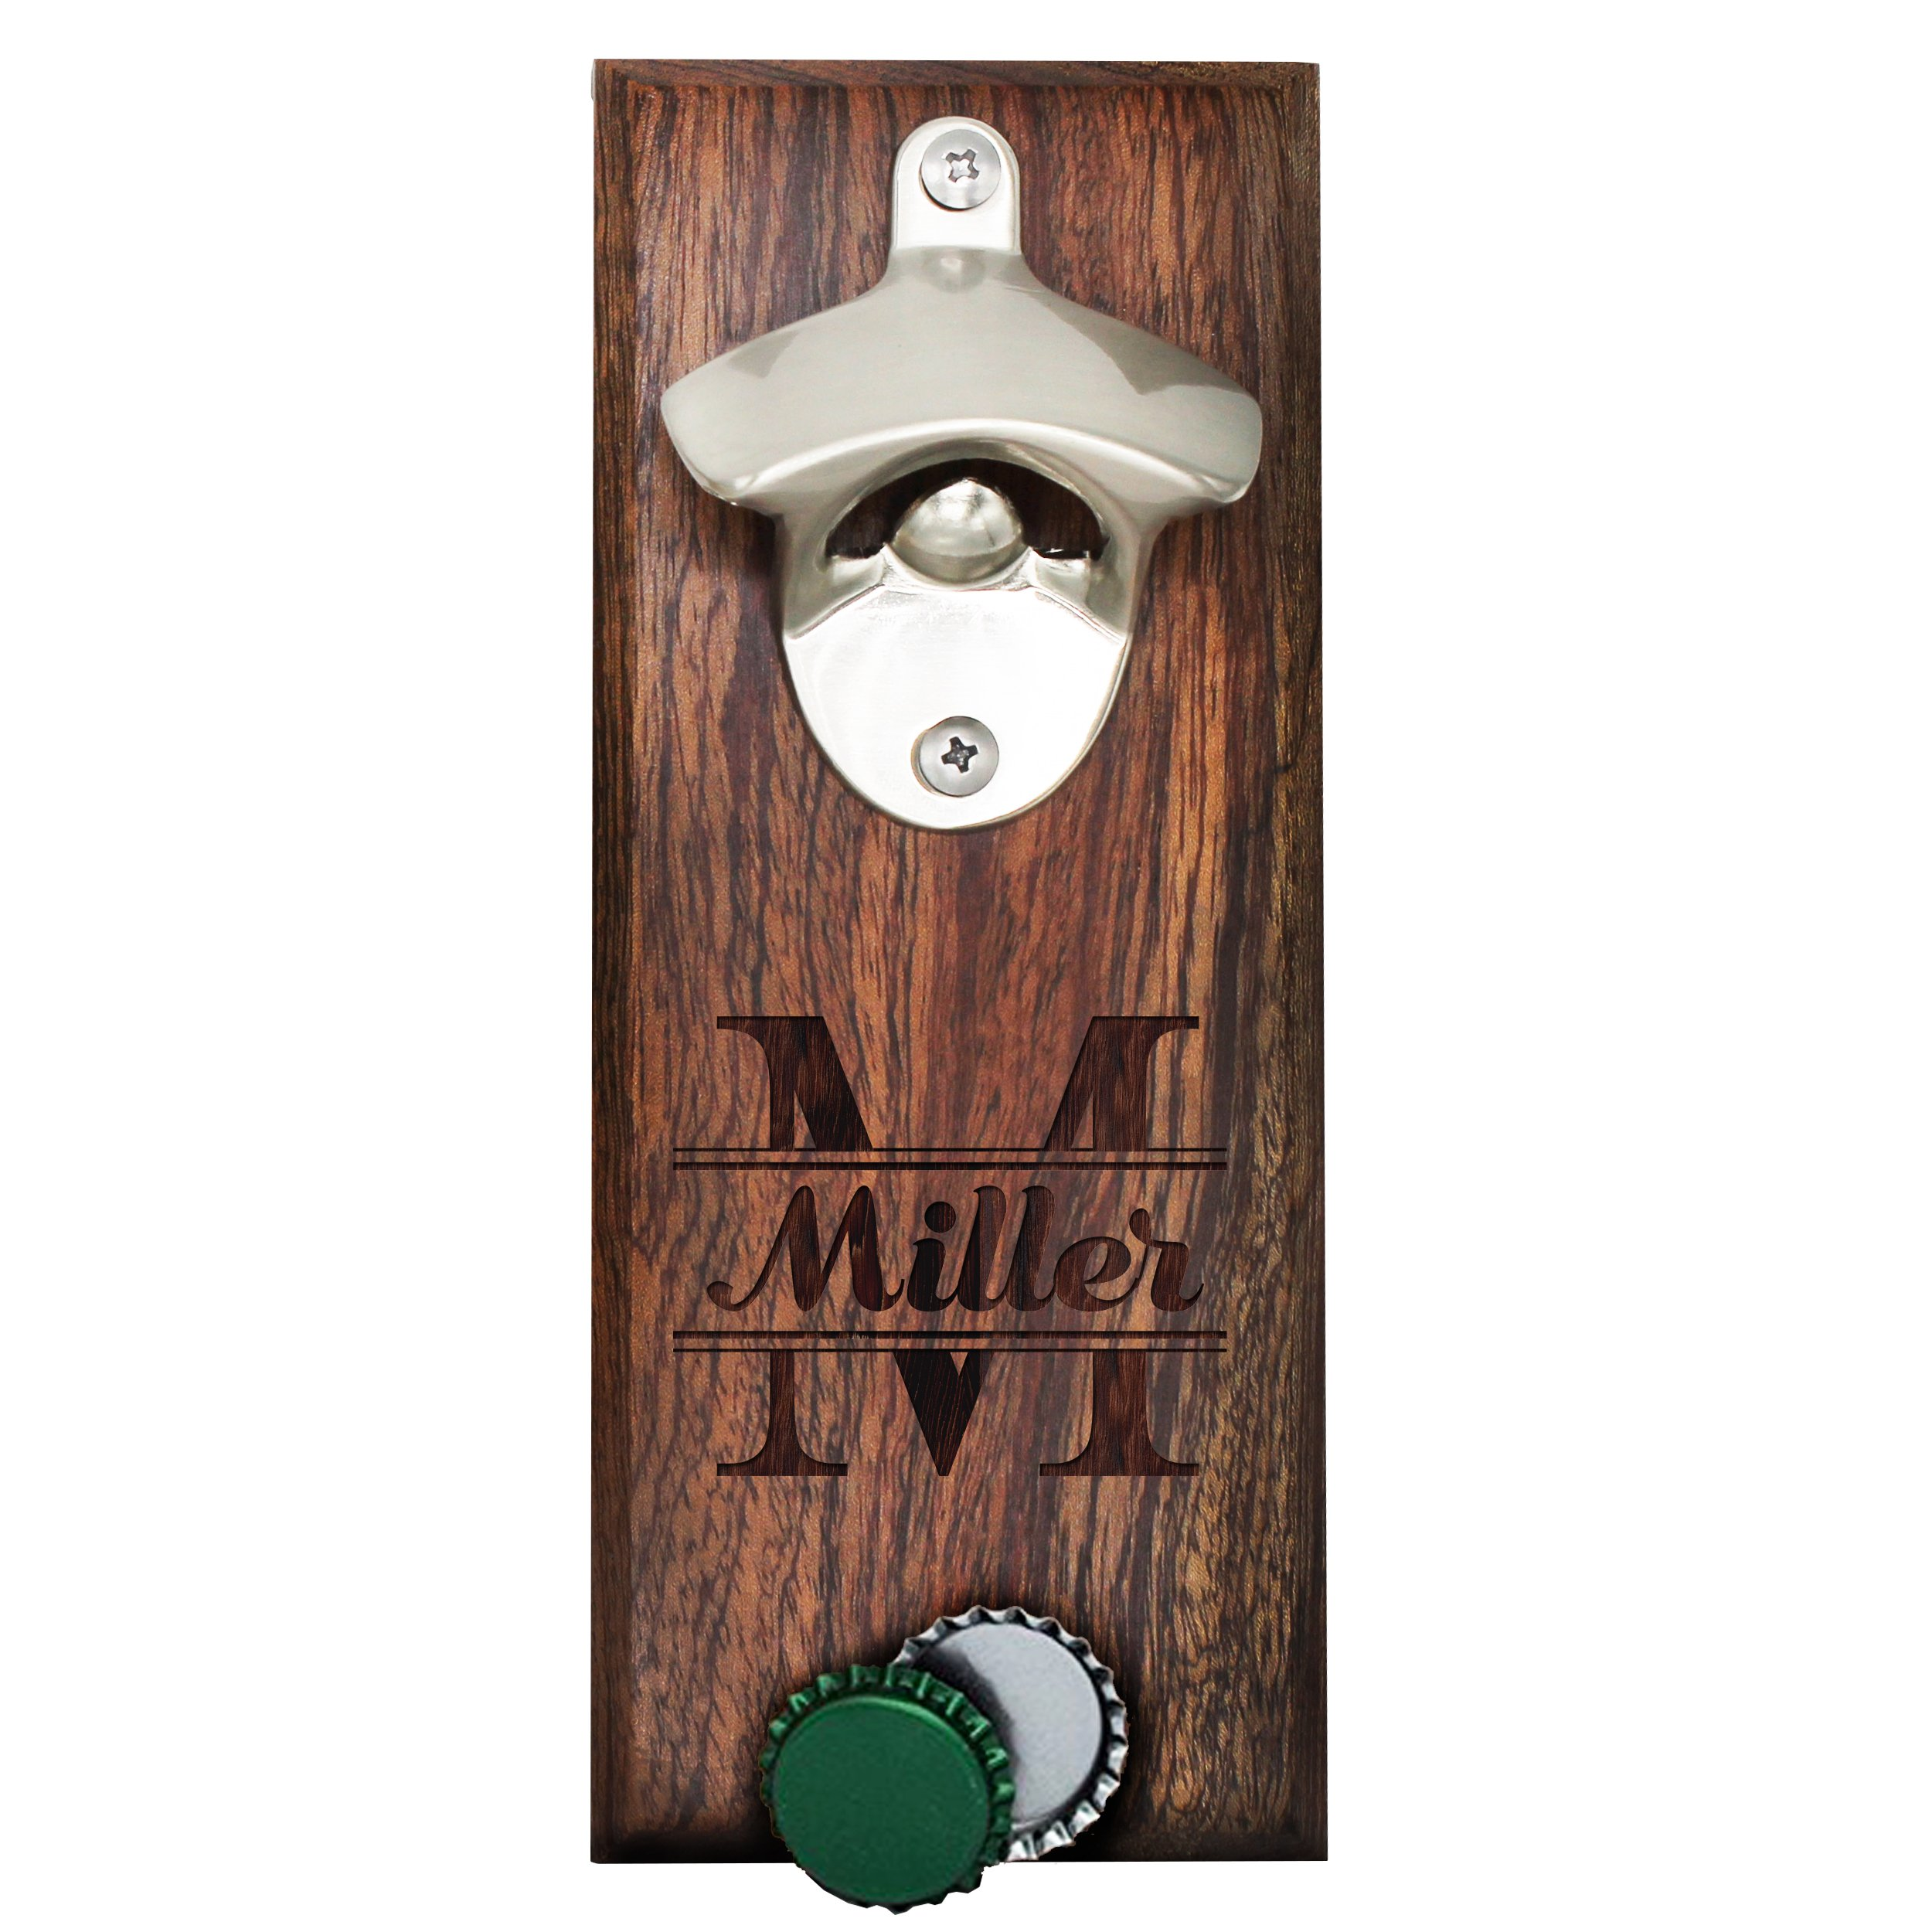 Personalized Wall Mount Bottle Opener Magnet Cap Catcher - Custom Engraved Groomsmen Wall Mounted Magnetic Gift (Walnut, Original) by The Wedding Party Store